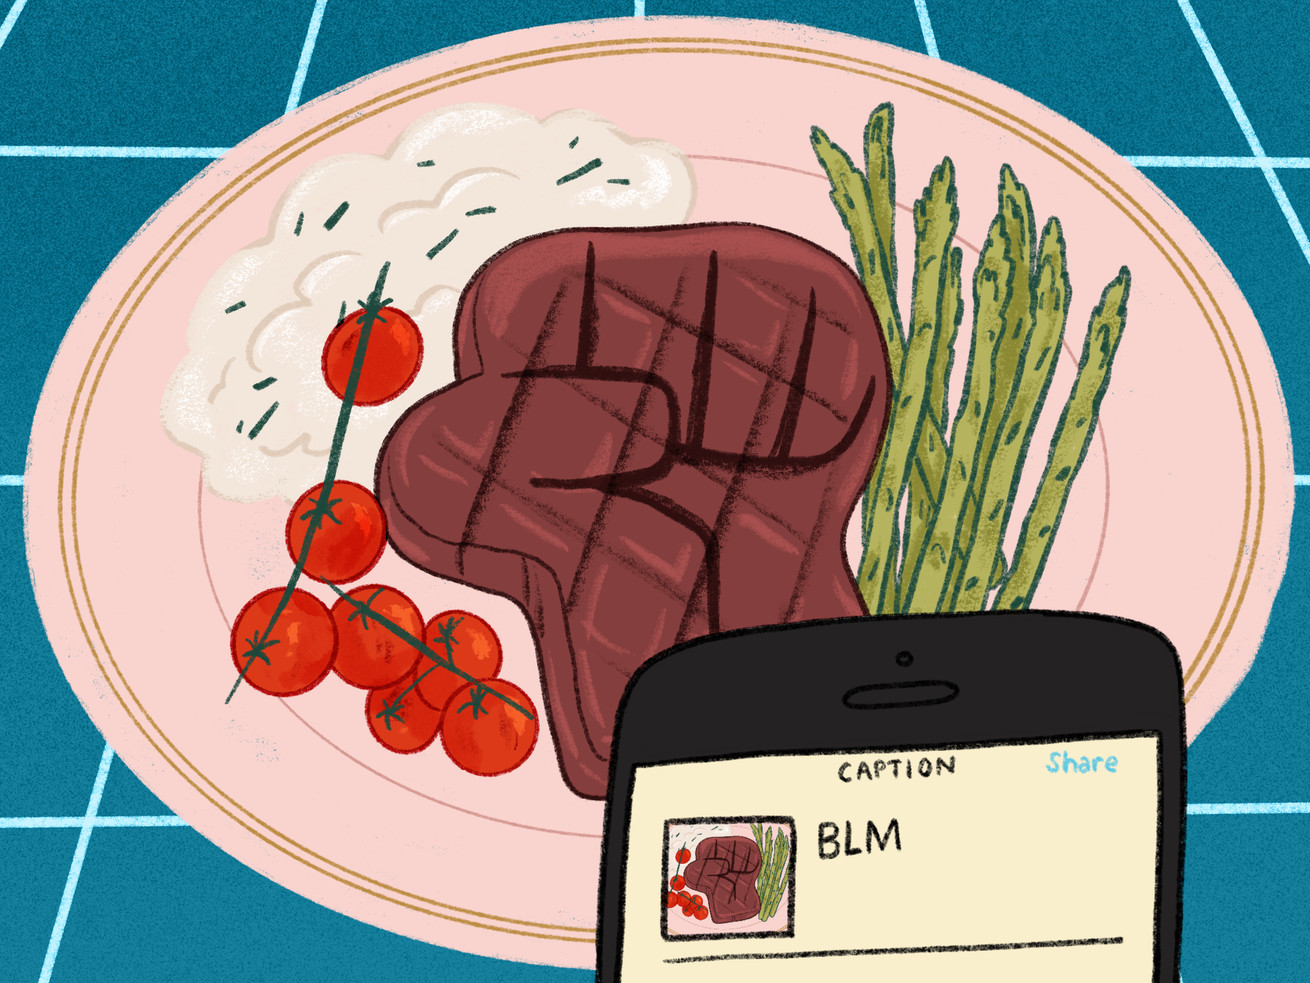 """Illustration of a steak on a plate; the steak is in the shape of a """"Black power"""" fist."""